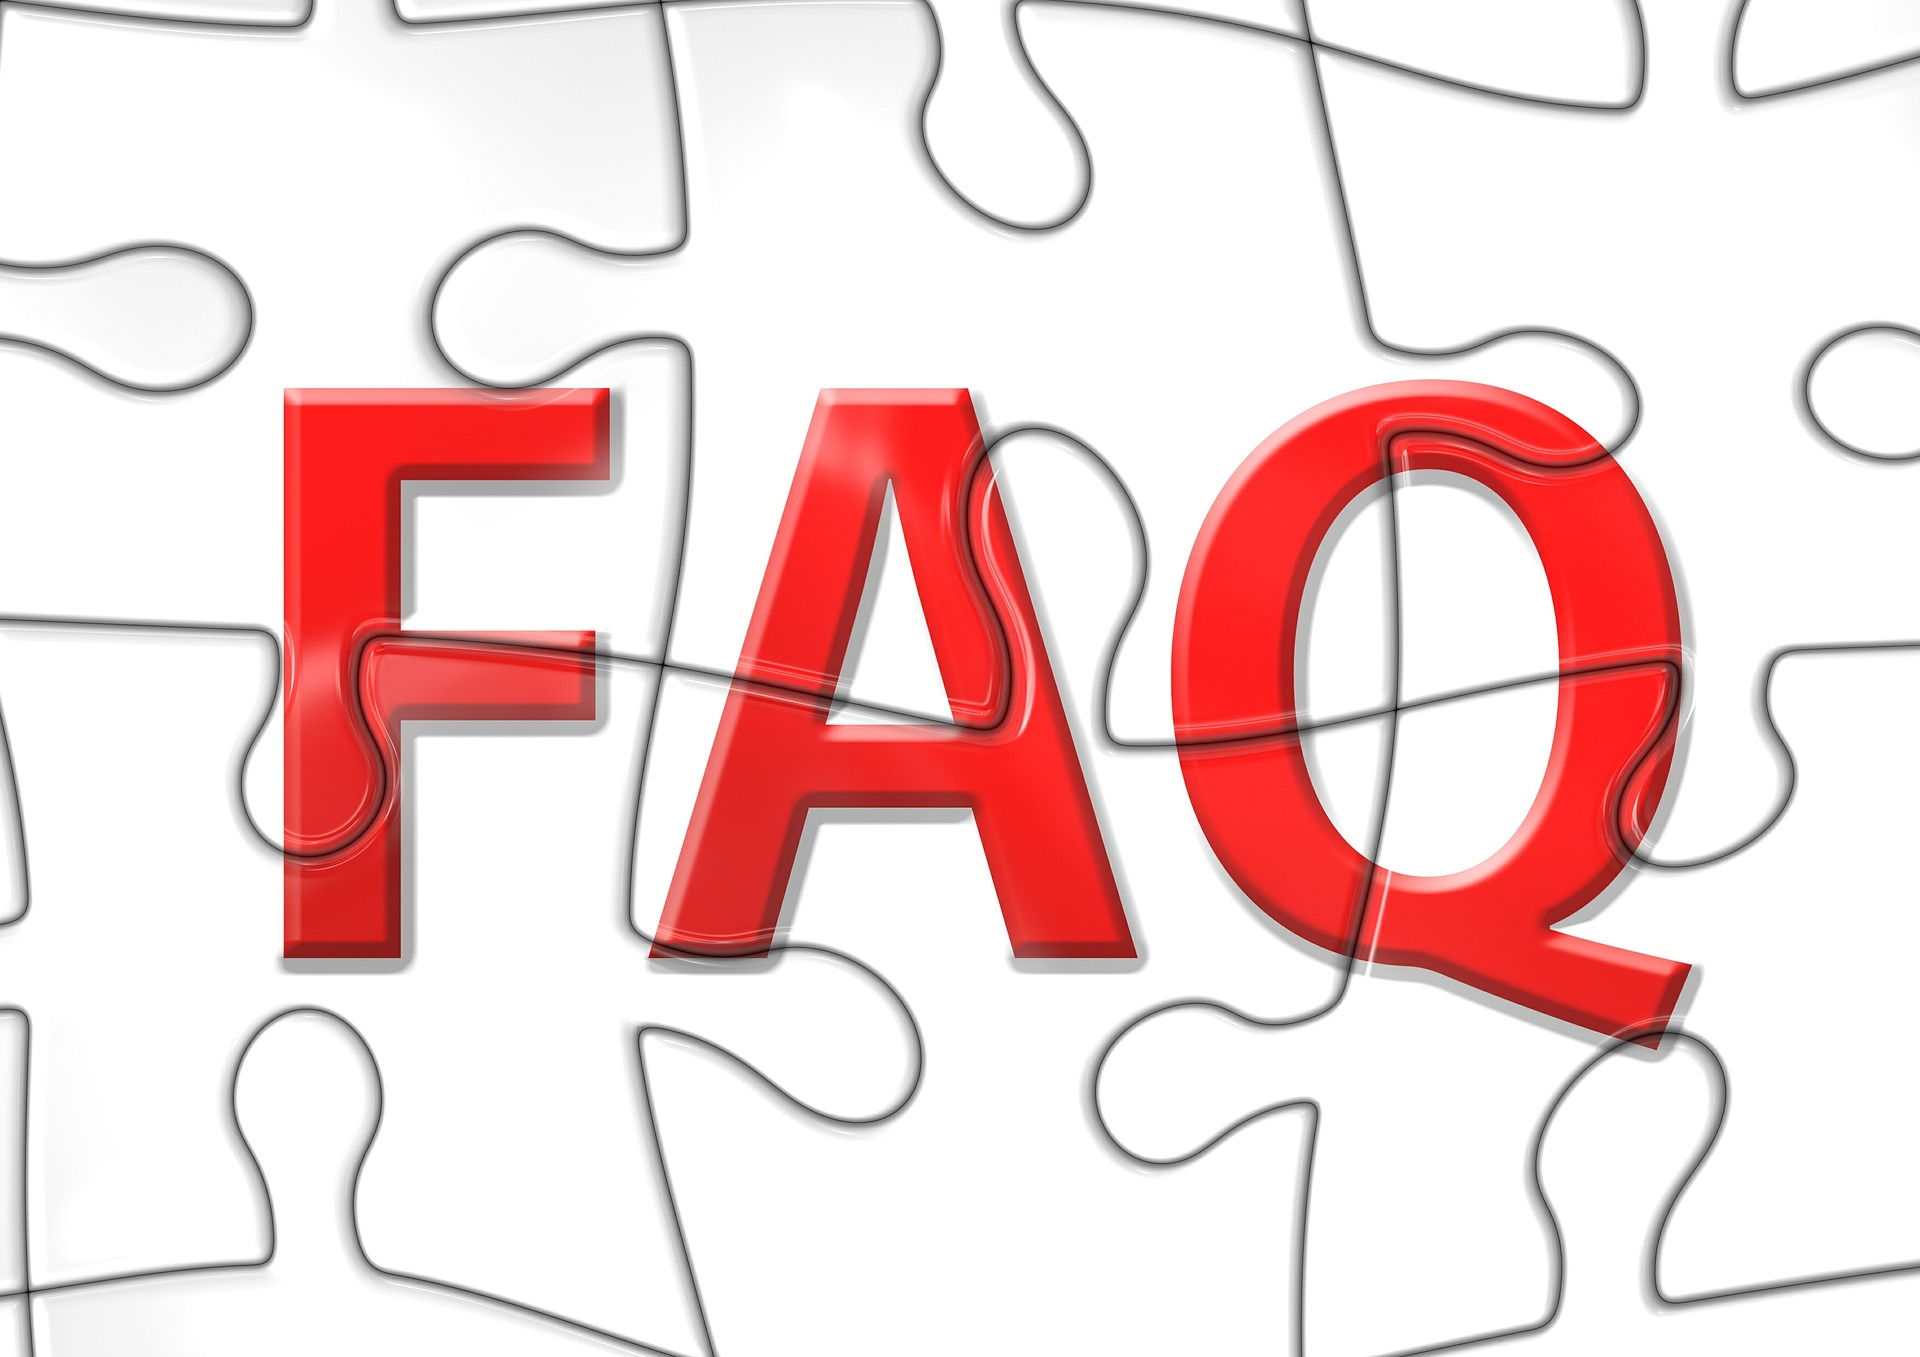 Artificial Turf's Frequently Asked Questions (FAQs)